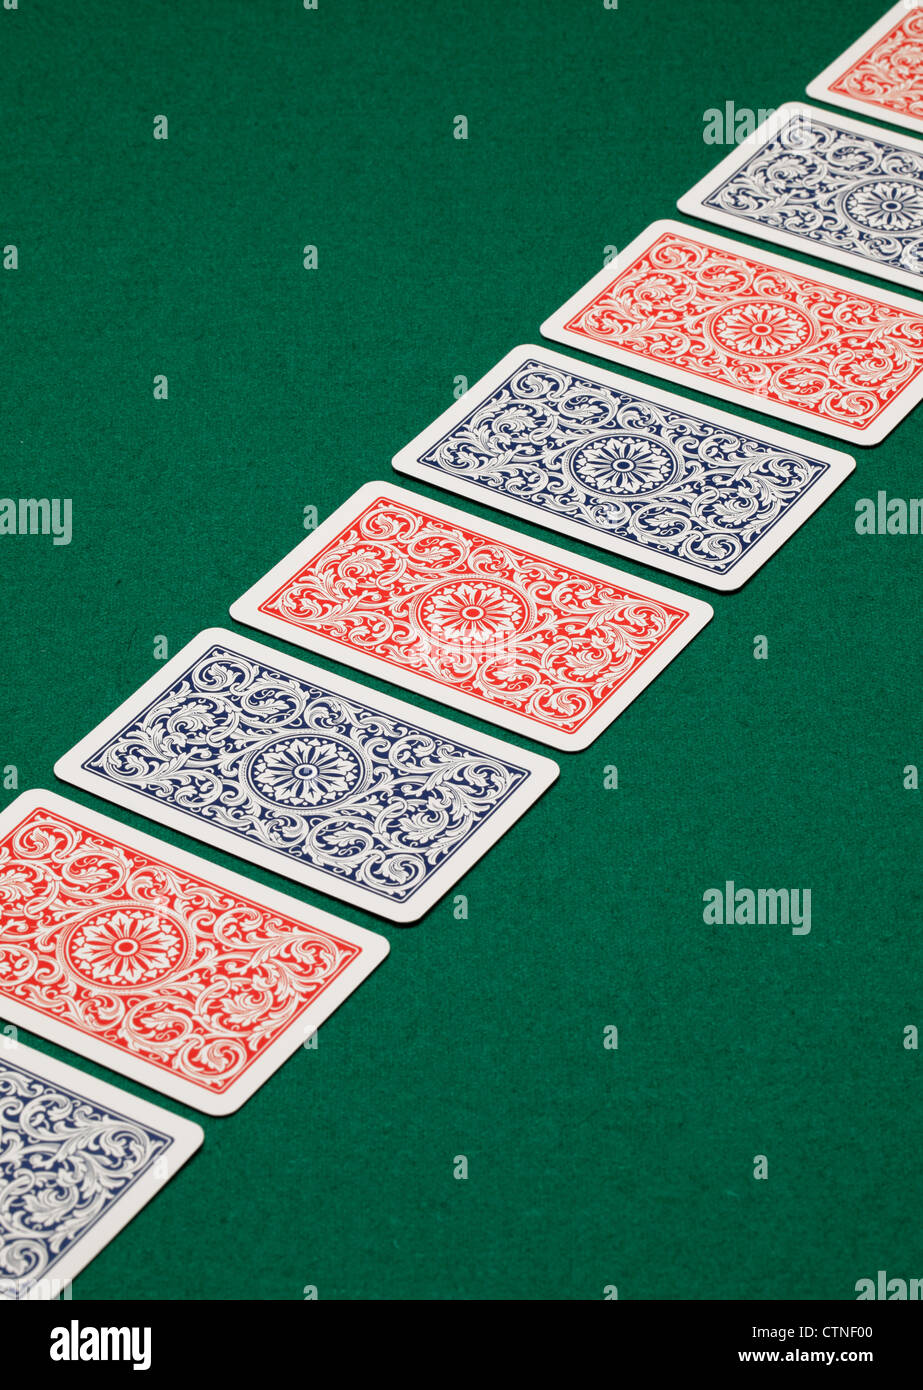 A diagonal line of playing cards on a green table. - Stock Image